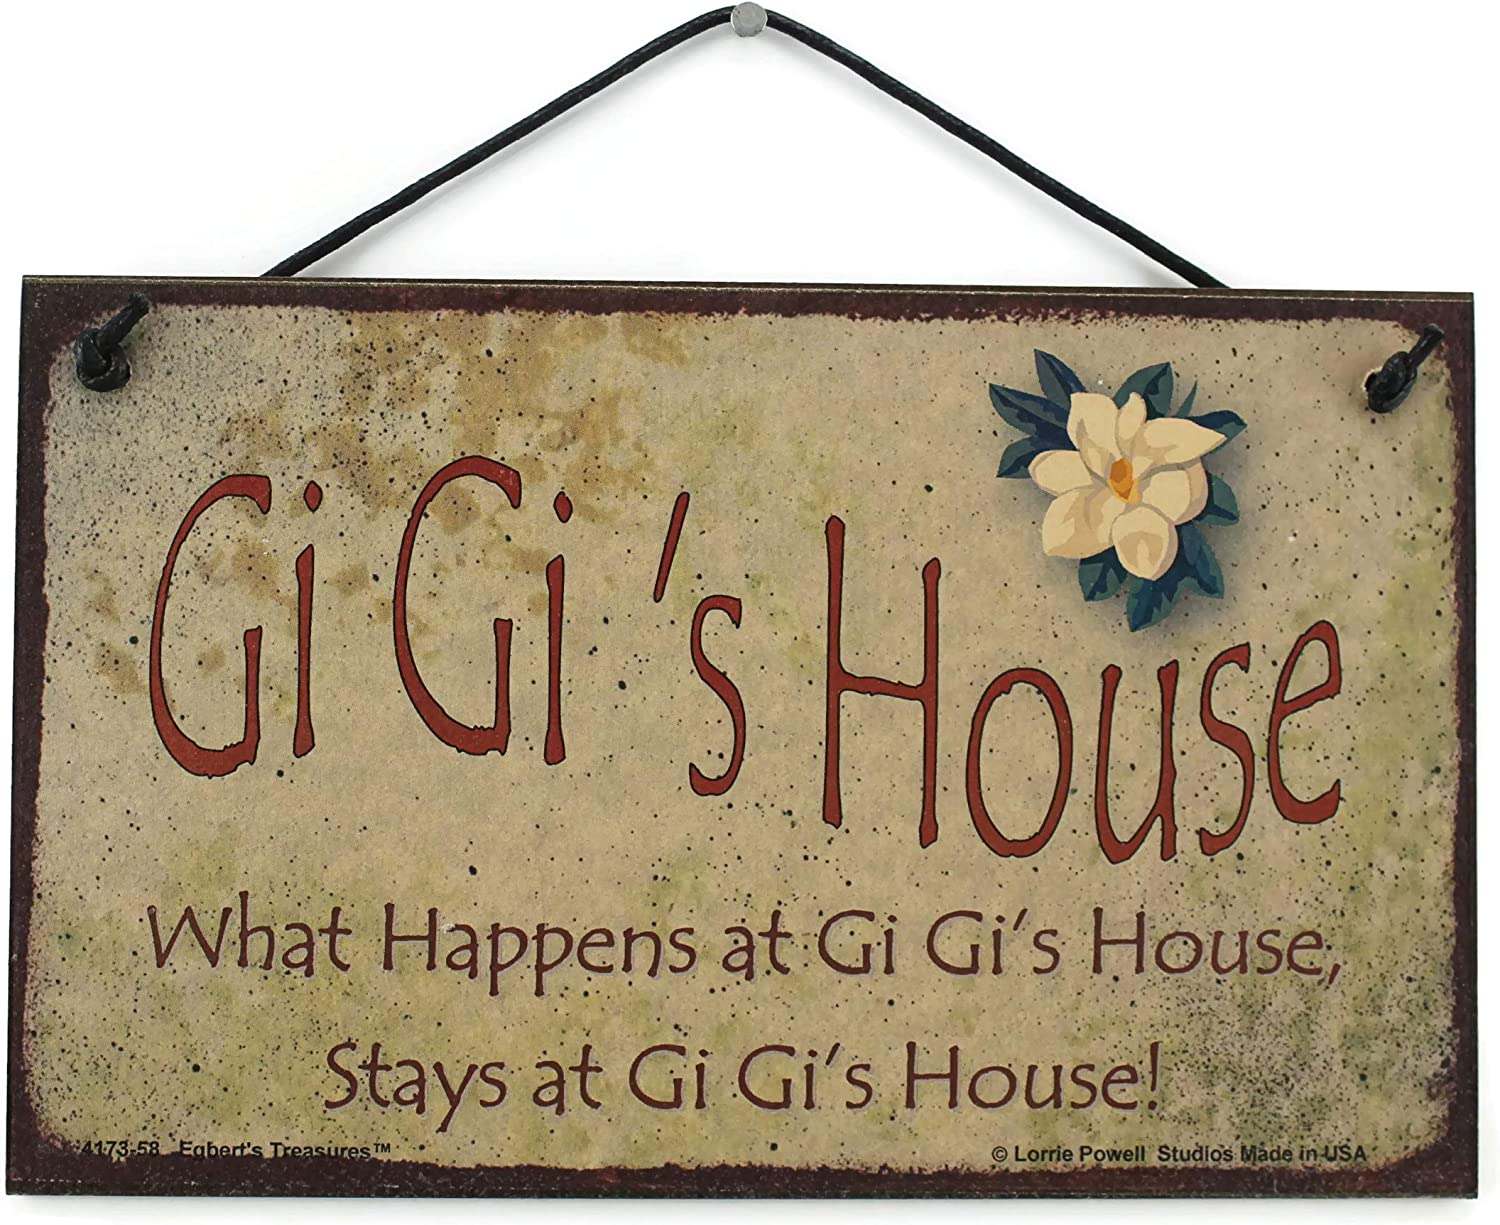 Egbert's Treasures 5x8 Vintage Style Sign with Magnolia Flower Saying, Gi Gi's House What Happens at Gi Gi's House, Stays at Gi Gi's House! Decorative Fun Universal Household Family Signs for Grandma